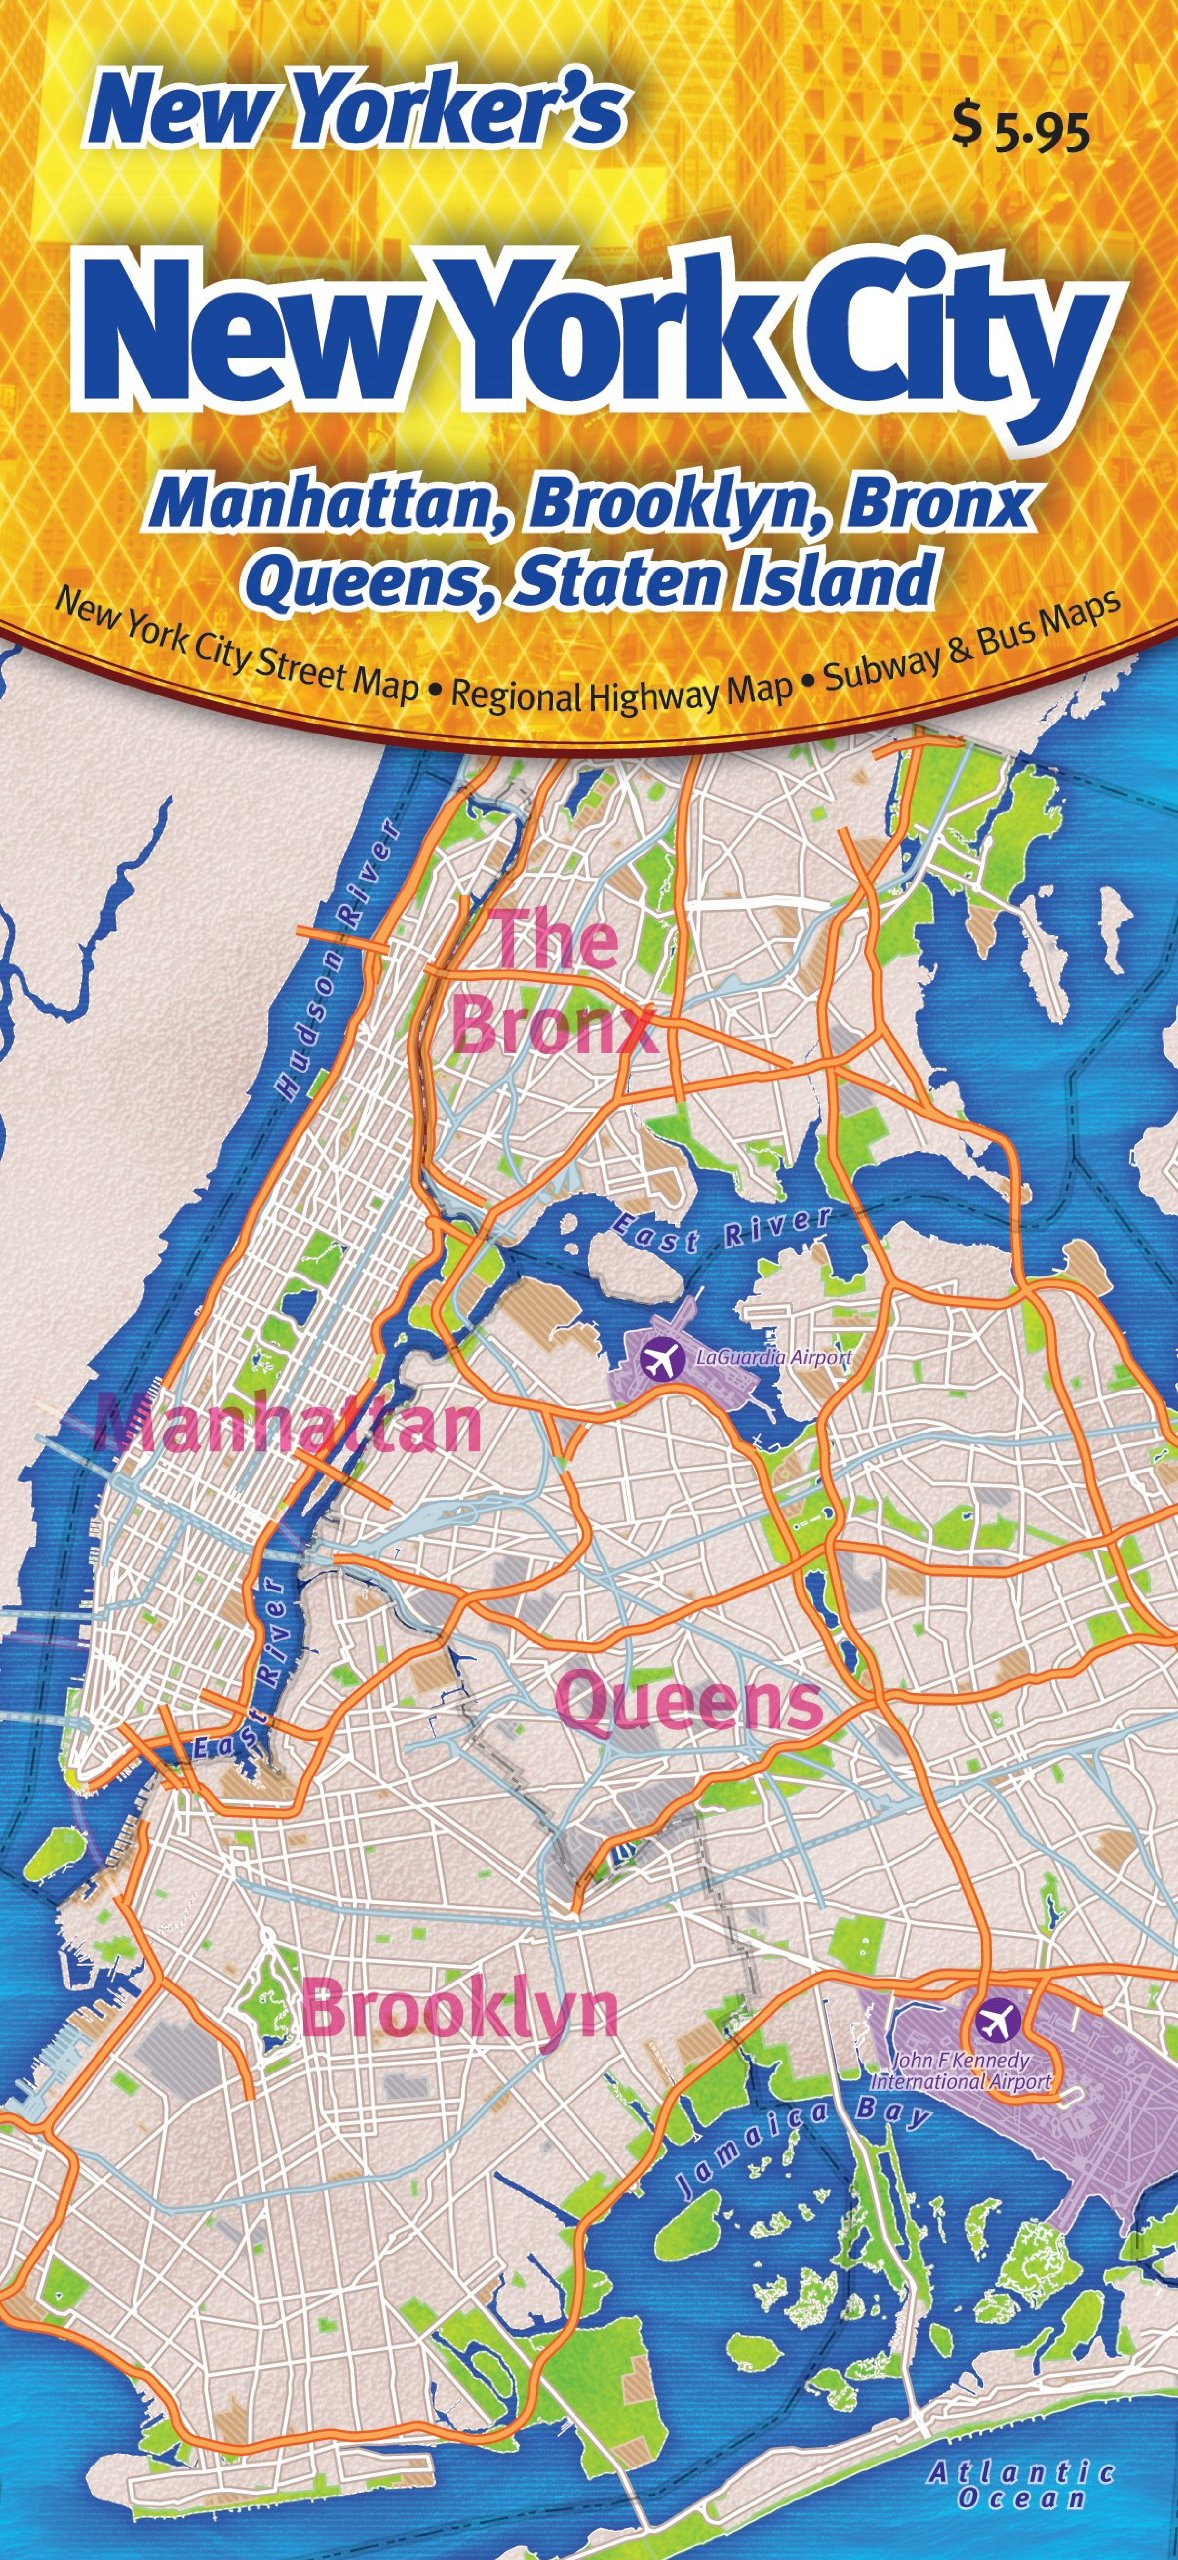 brooklyn map new york New Yorker S New York City Map Manhattan Brooklyn Bronx Queens brooklyn map new york